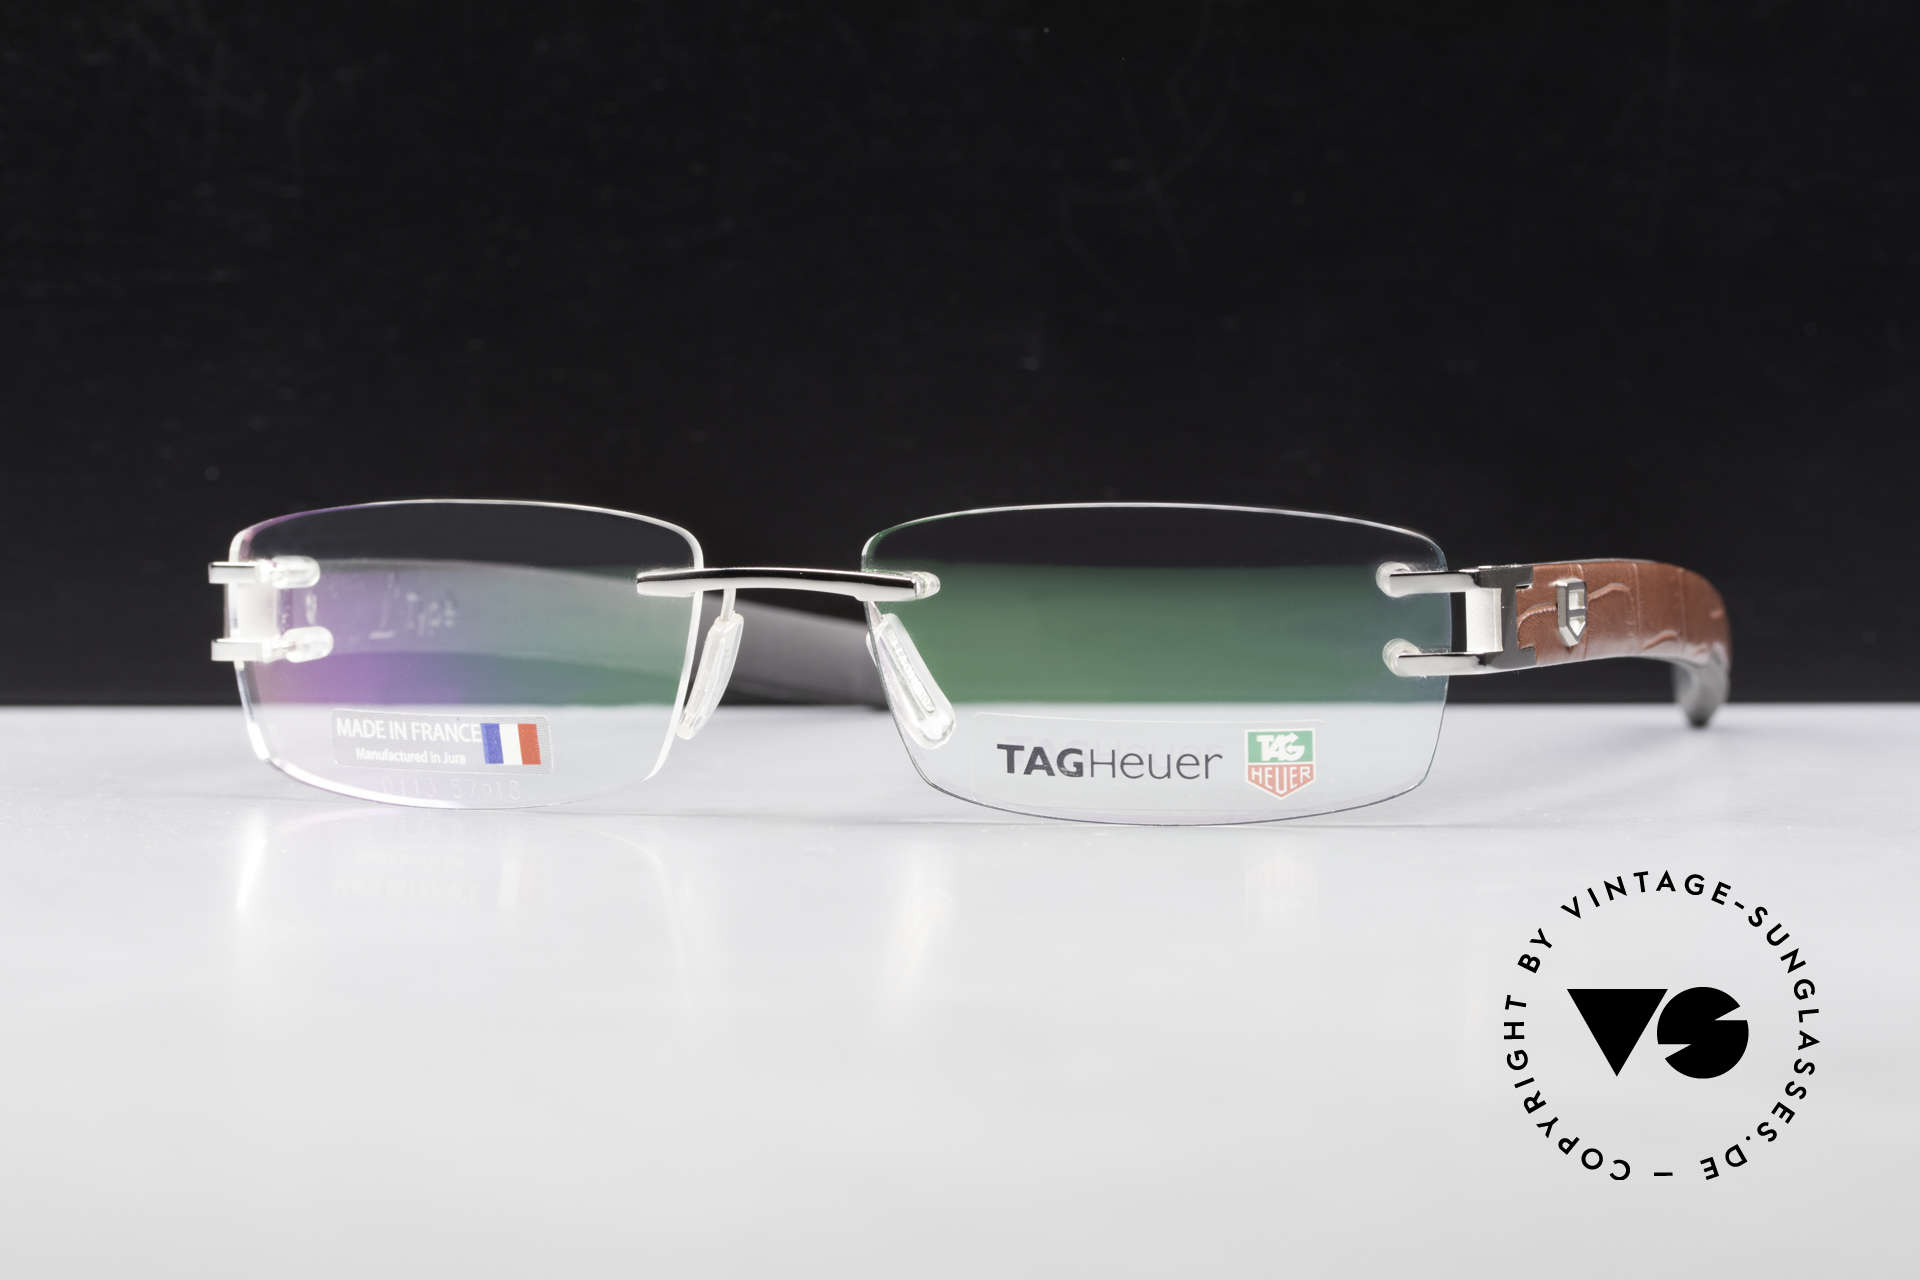 Tag Heuer L-Type 0113 Alligator Leather Rimless Frame, Tag Heuer L-Type glasses, model 0113 in size 57-18, Made for Men